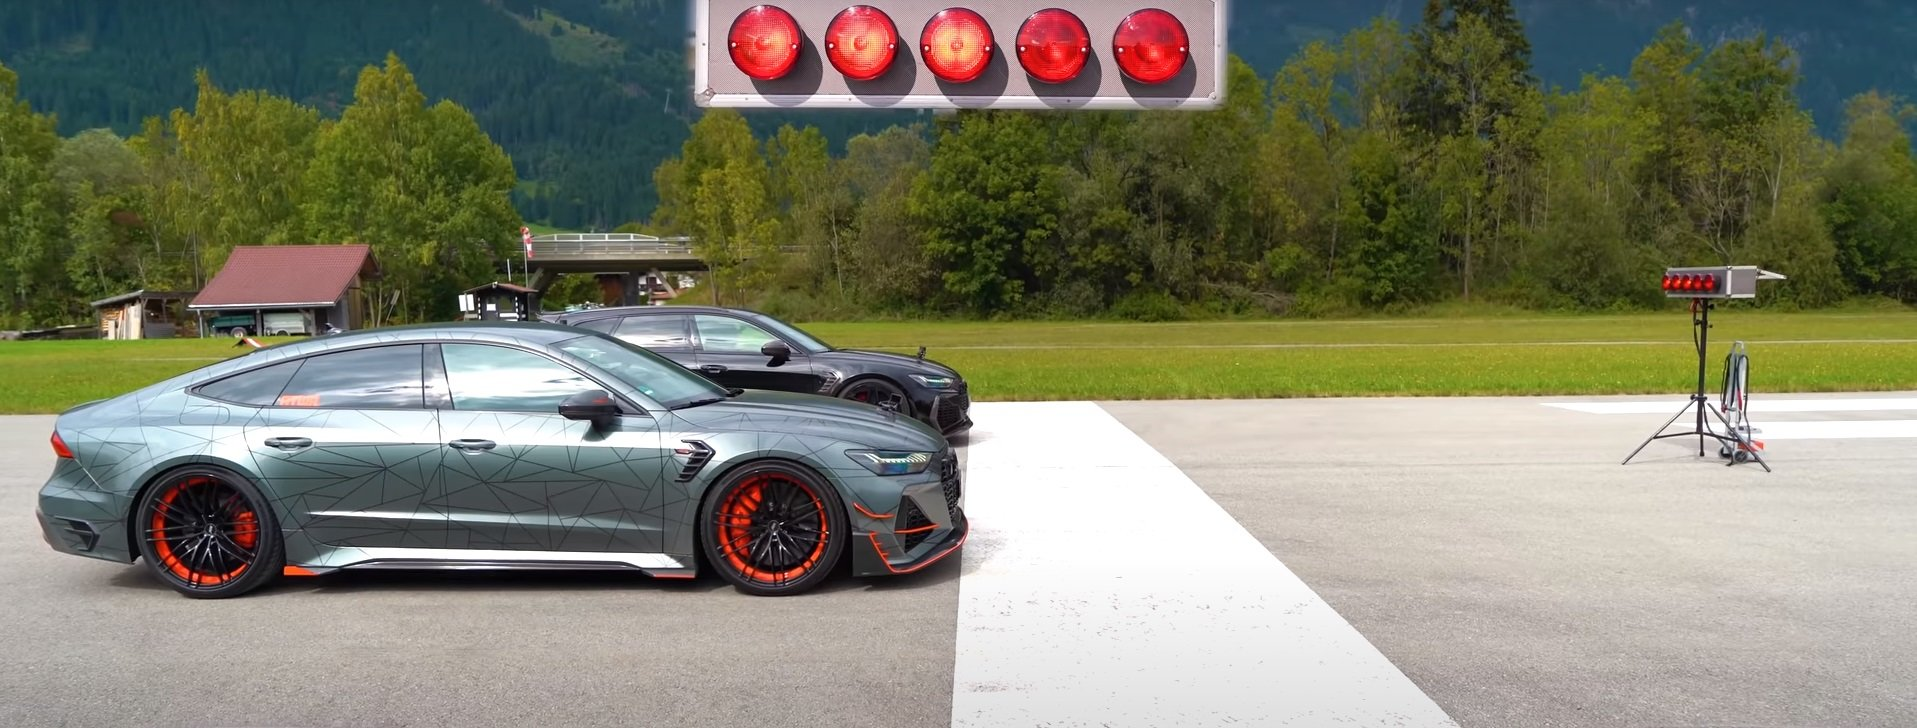 abt-audi-rs-6-vs-abt-audi-rs-7-is-the-tightest-1600hp-drag-race-you-ll-ever-see-170335_1.jpg